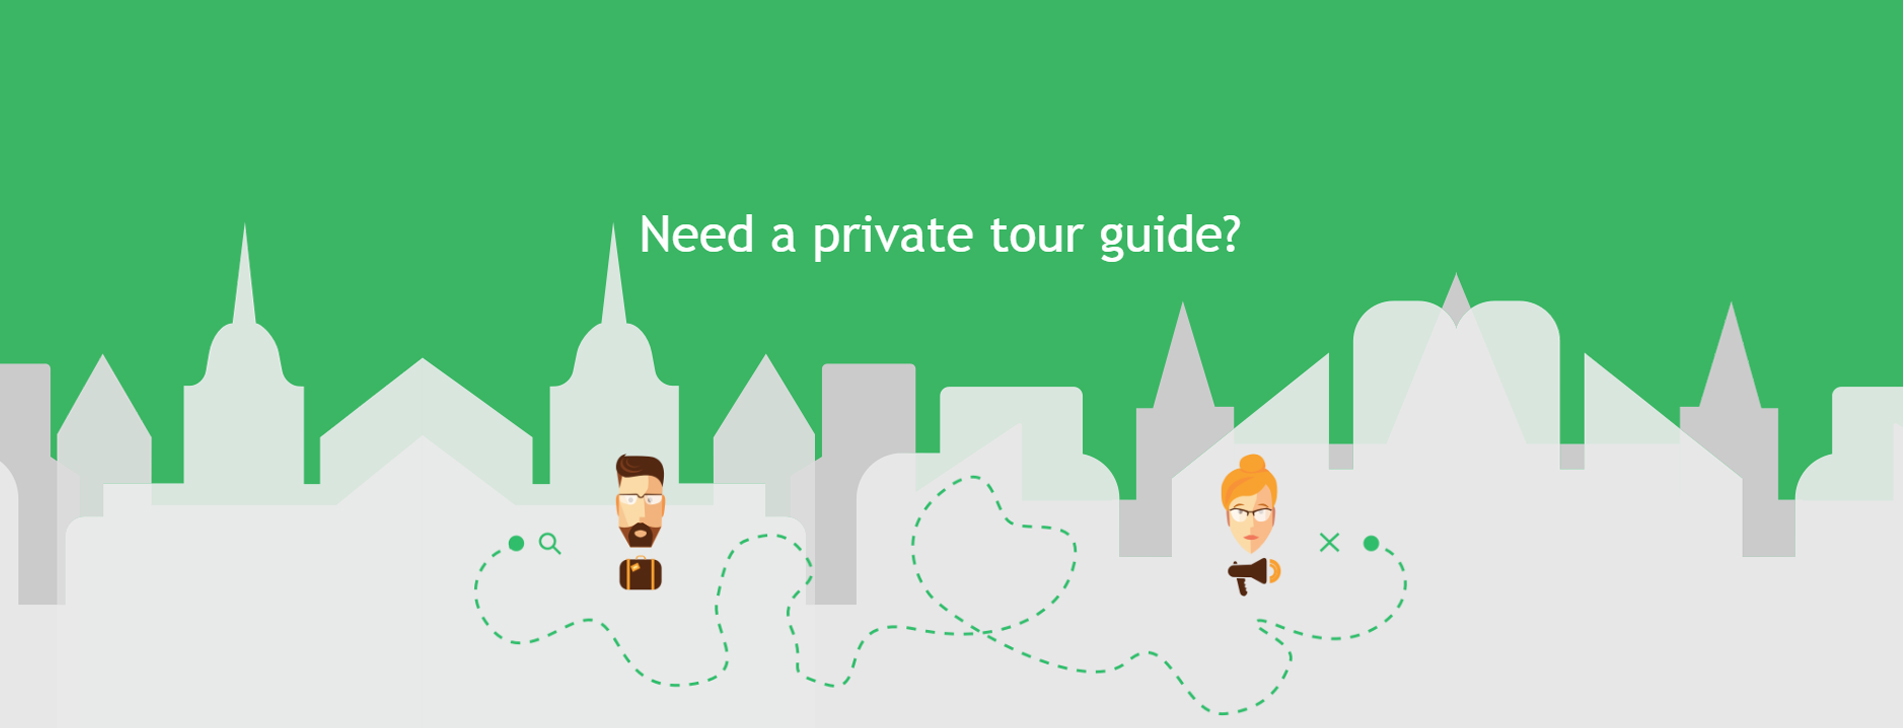 APPLICATION LOCALIZATION: TOUR GUIDE, BY THE TOUR GUIDE COMPANY